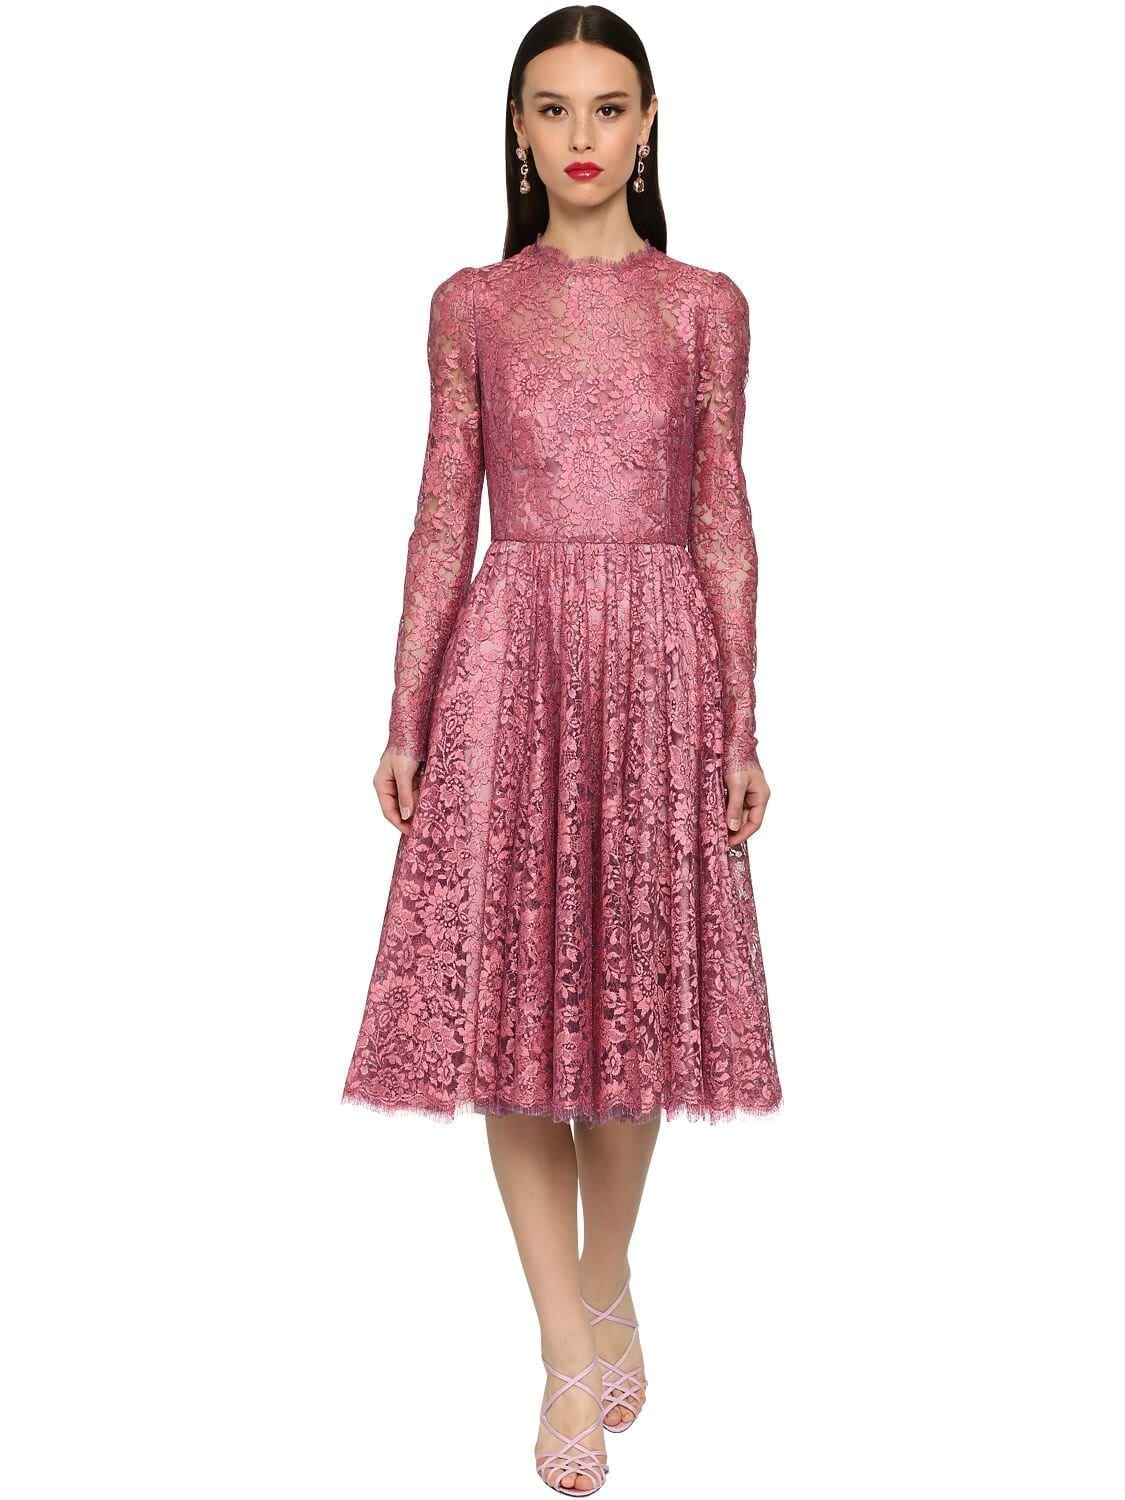 DOLCE & GABBANA Flared Chantilly Lace Lamé Midi Dress